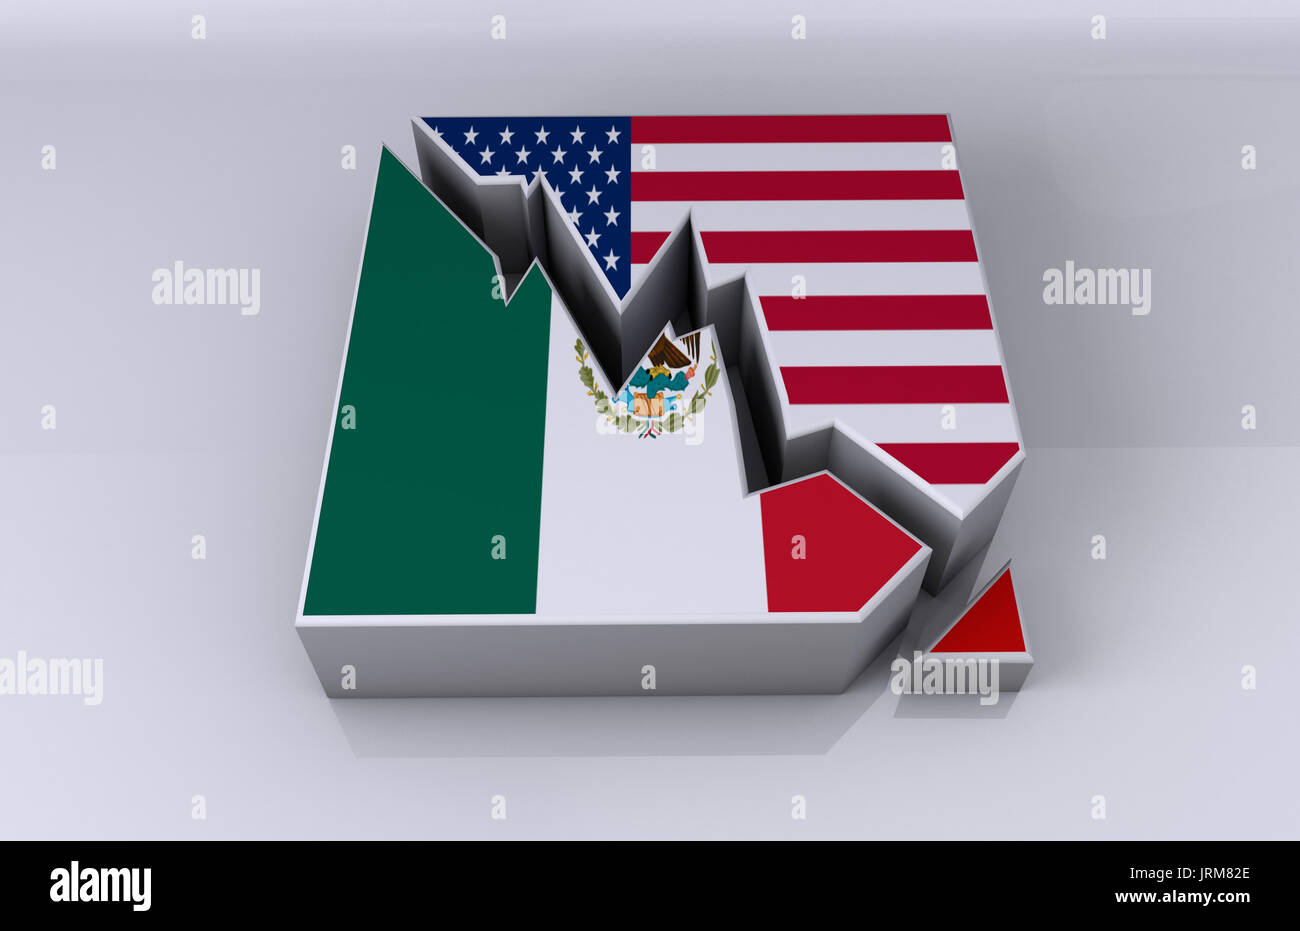 Mexico and USA business relations Stock Photo